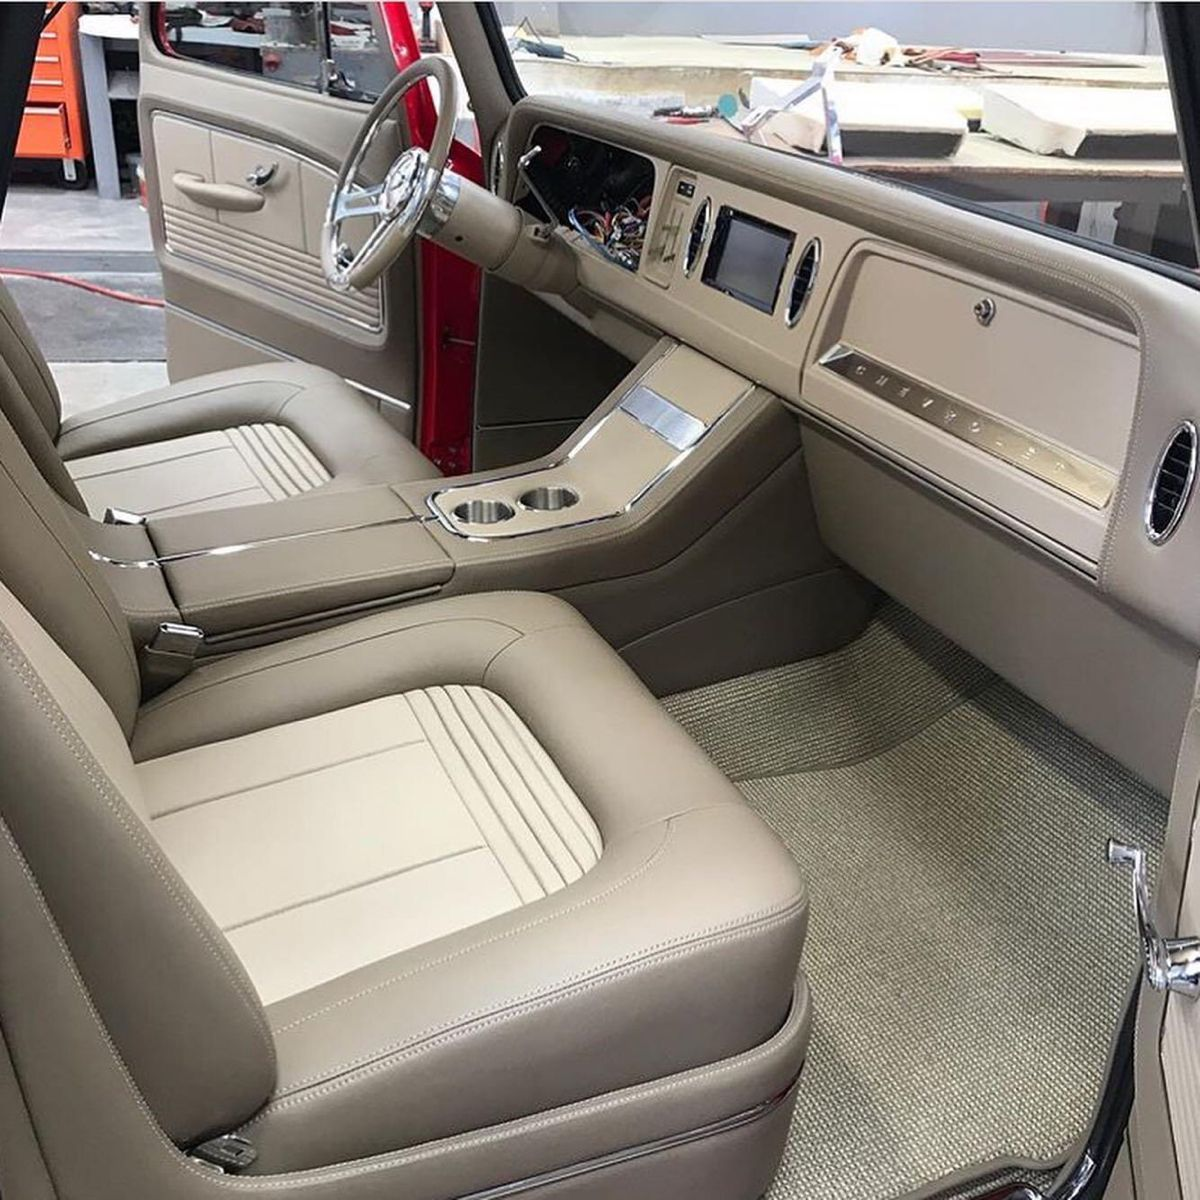 Pin By Reagan On Car Interiors In 2020 Truck Interior Car Interior Upholstery C10 Chevy Truck